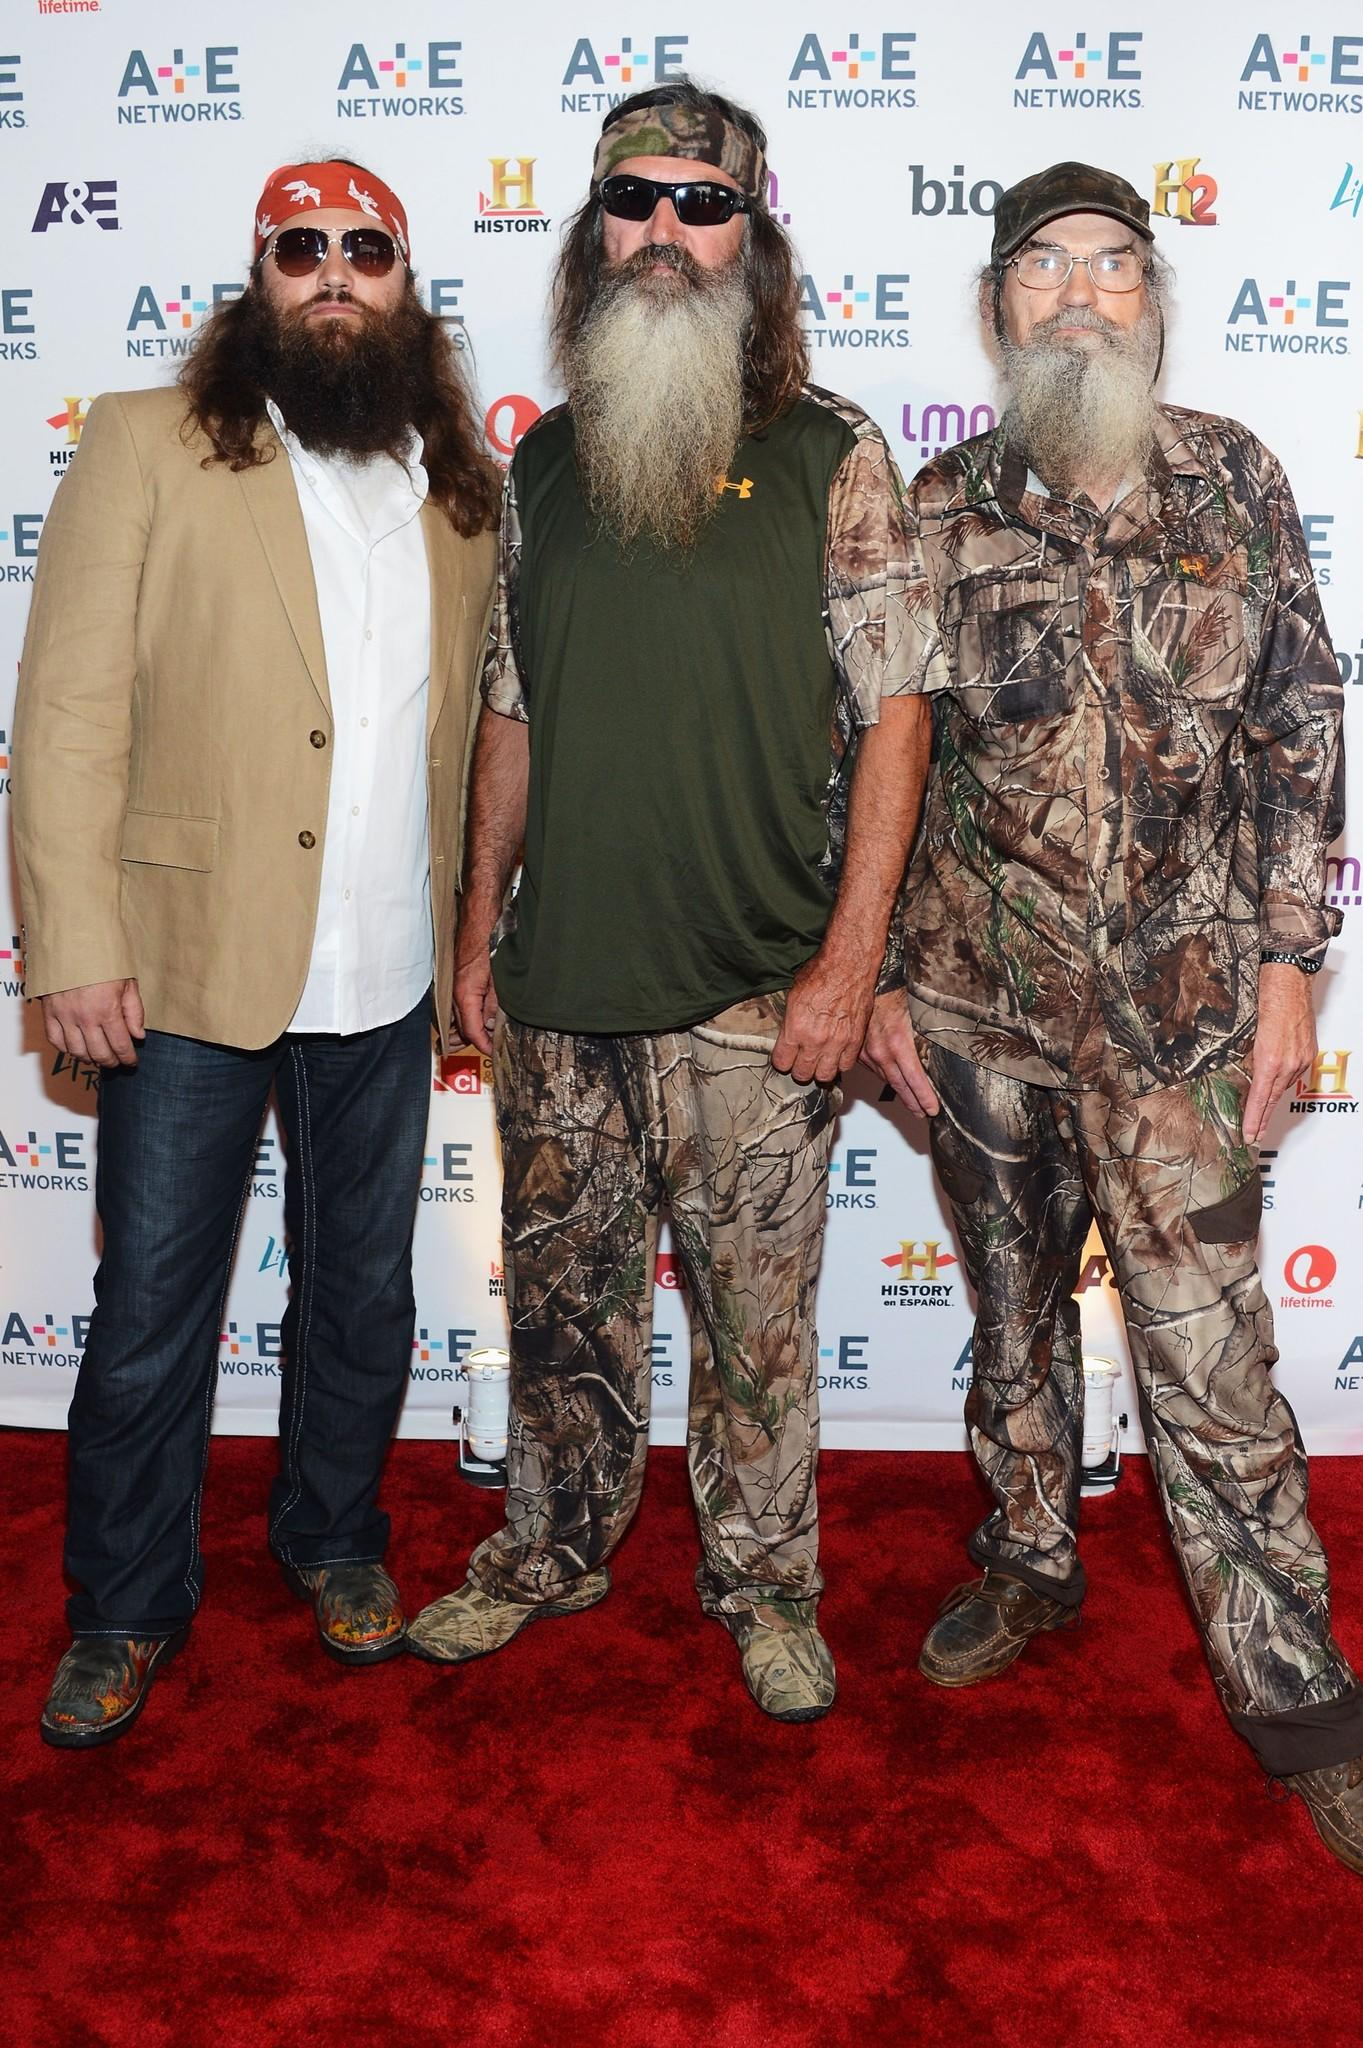 A&E reality series, Duck Dynasty premieres its fifth season.